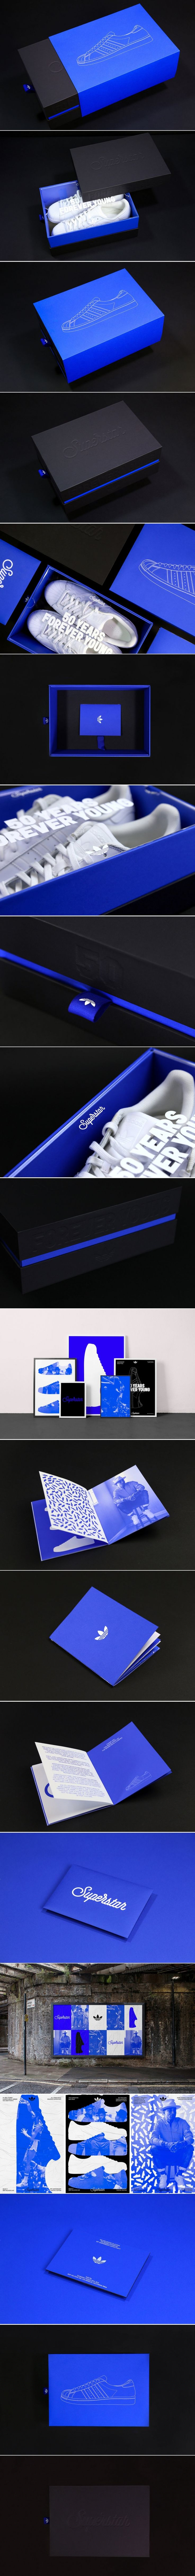 We Love This Bold Packaging and Branding Concept For Adidas Superstar's 50th Anniversary — The Dieline | Packaging & Branding Design & Innovation News